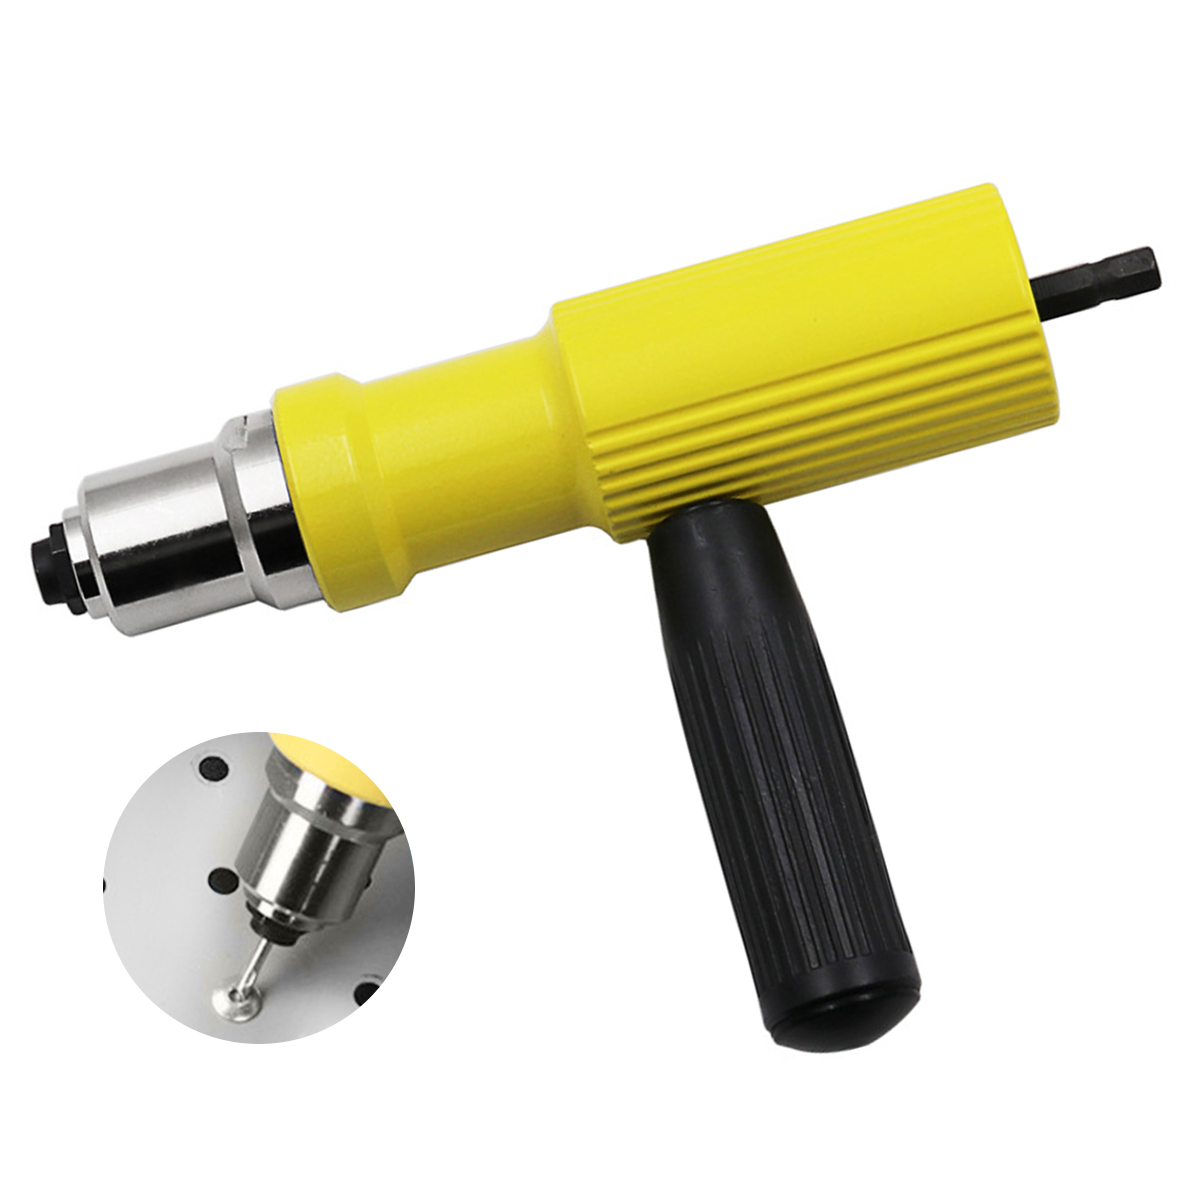 Electric Rivet Nut Gun Riveting Tool Cordless Riveting Drill Adapter Insert Nut Tool